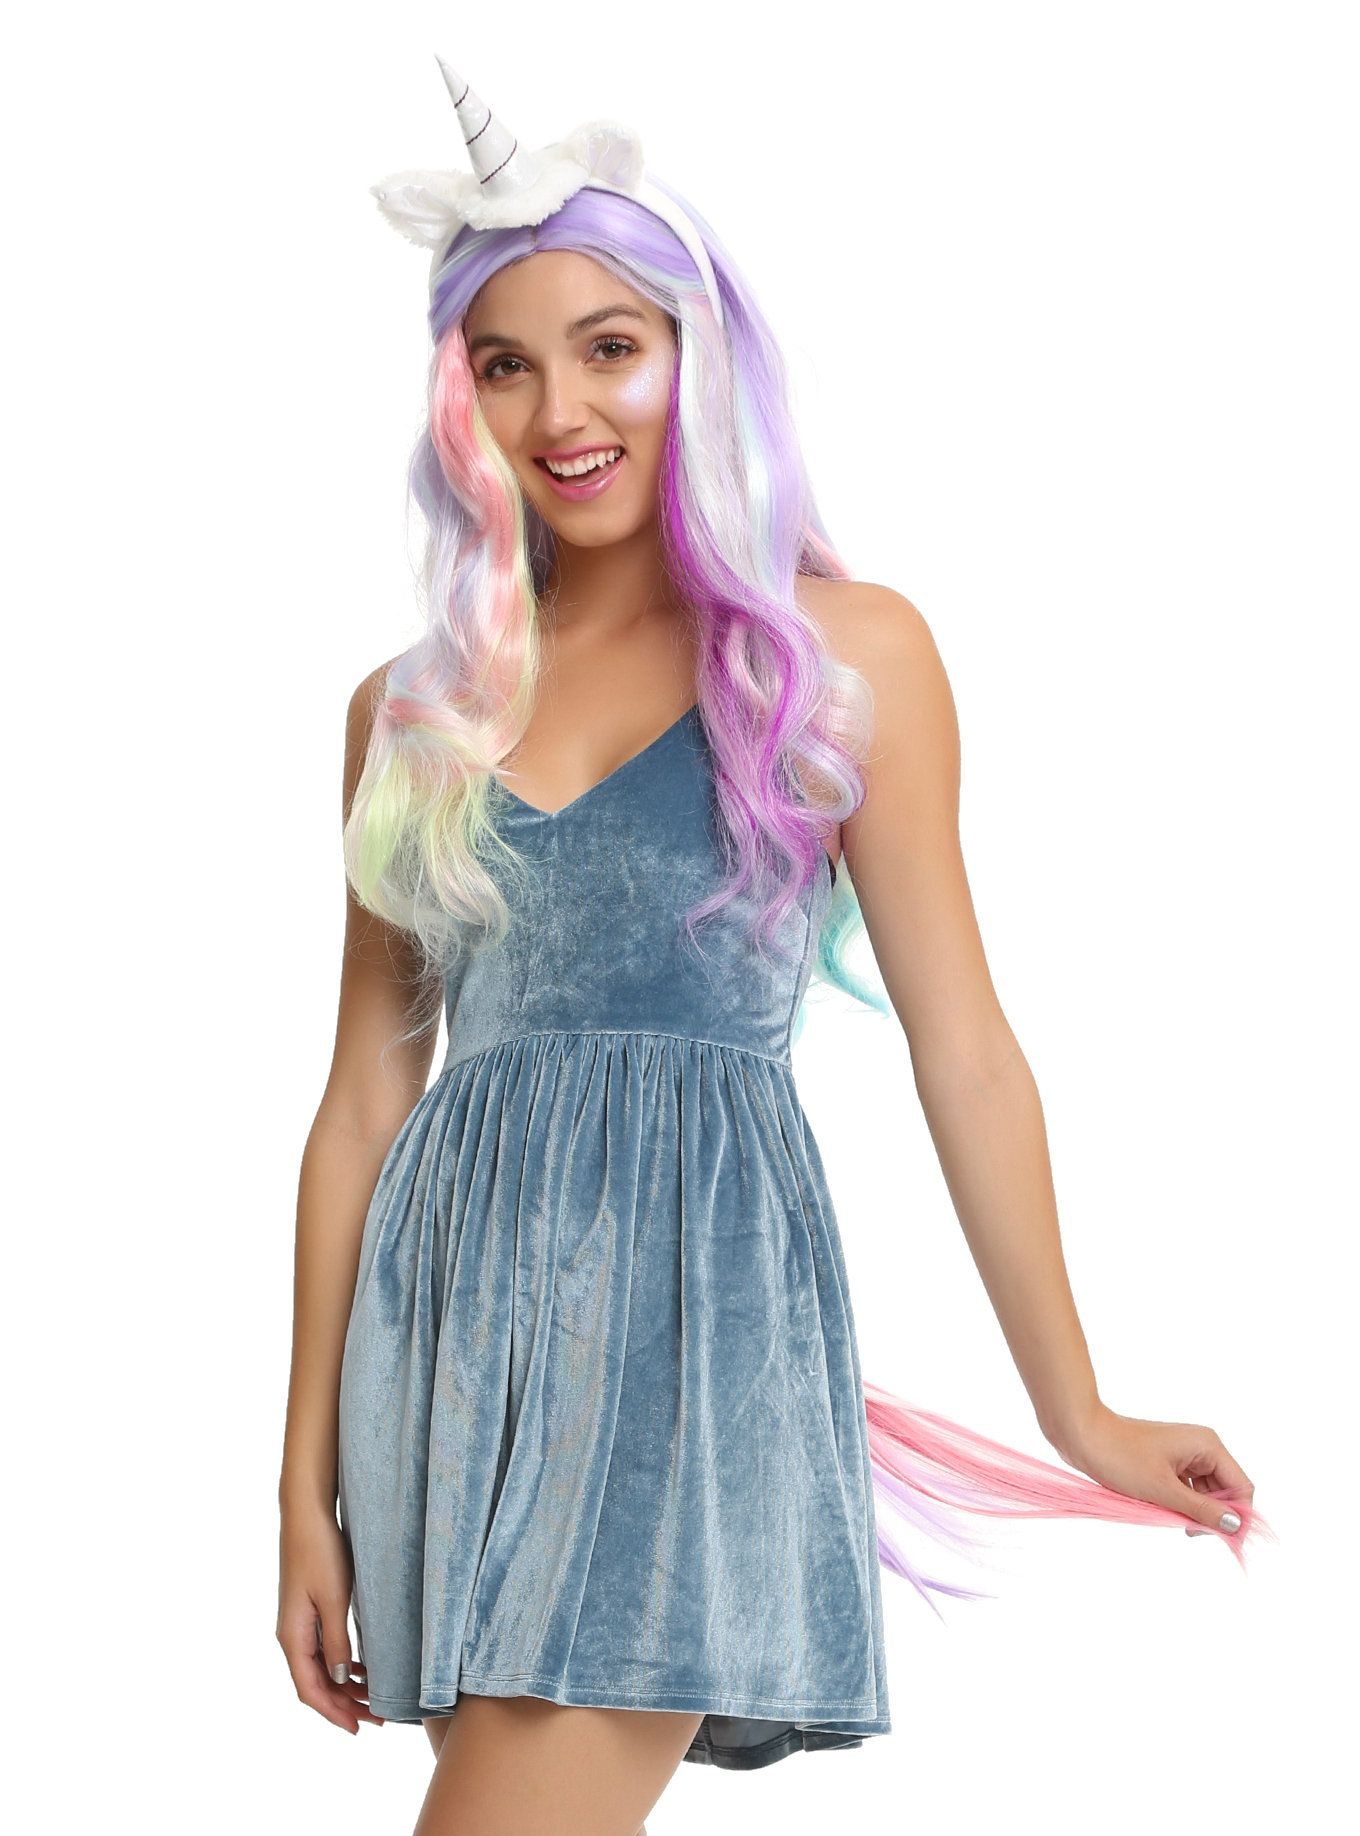 Complete your magical transformation with this accessory kit featuring a unicorn horn and ears headband and  sc 1 st  Pinterest & Unicorn Costume Accessory Kit | Ear headbands Unicorns and Costume ...